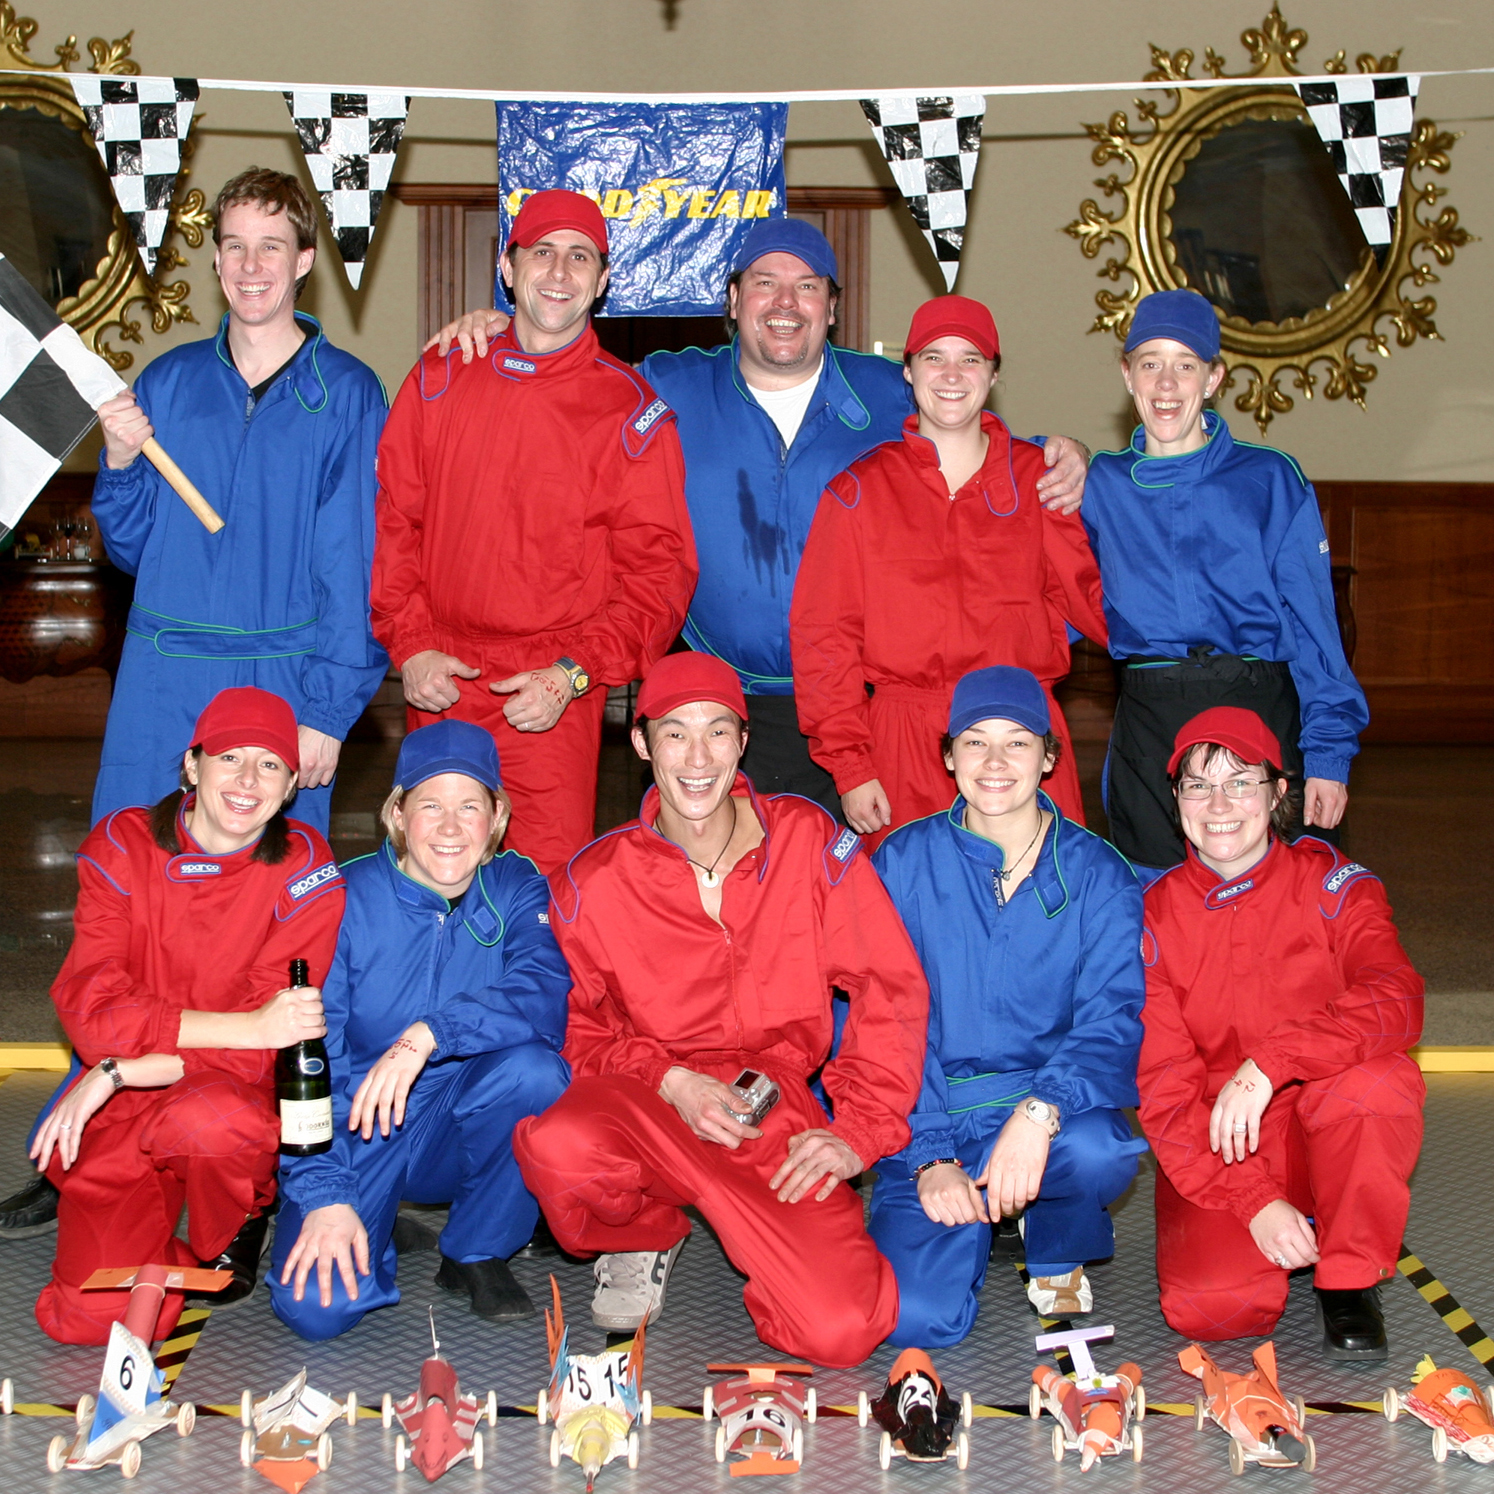 Teams wearing red and blue overalls posing with their model cars ready for the final race of Orangeworks activity Team Torque